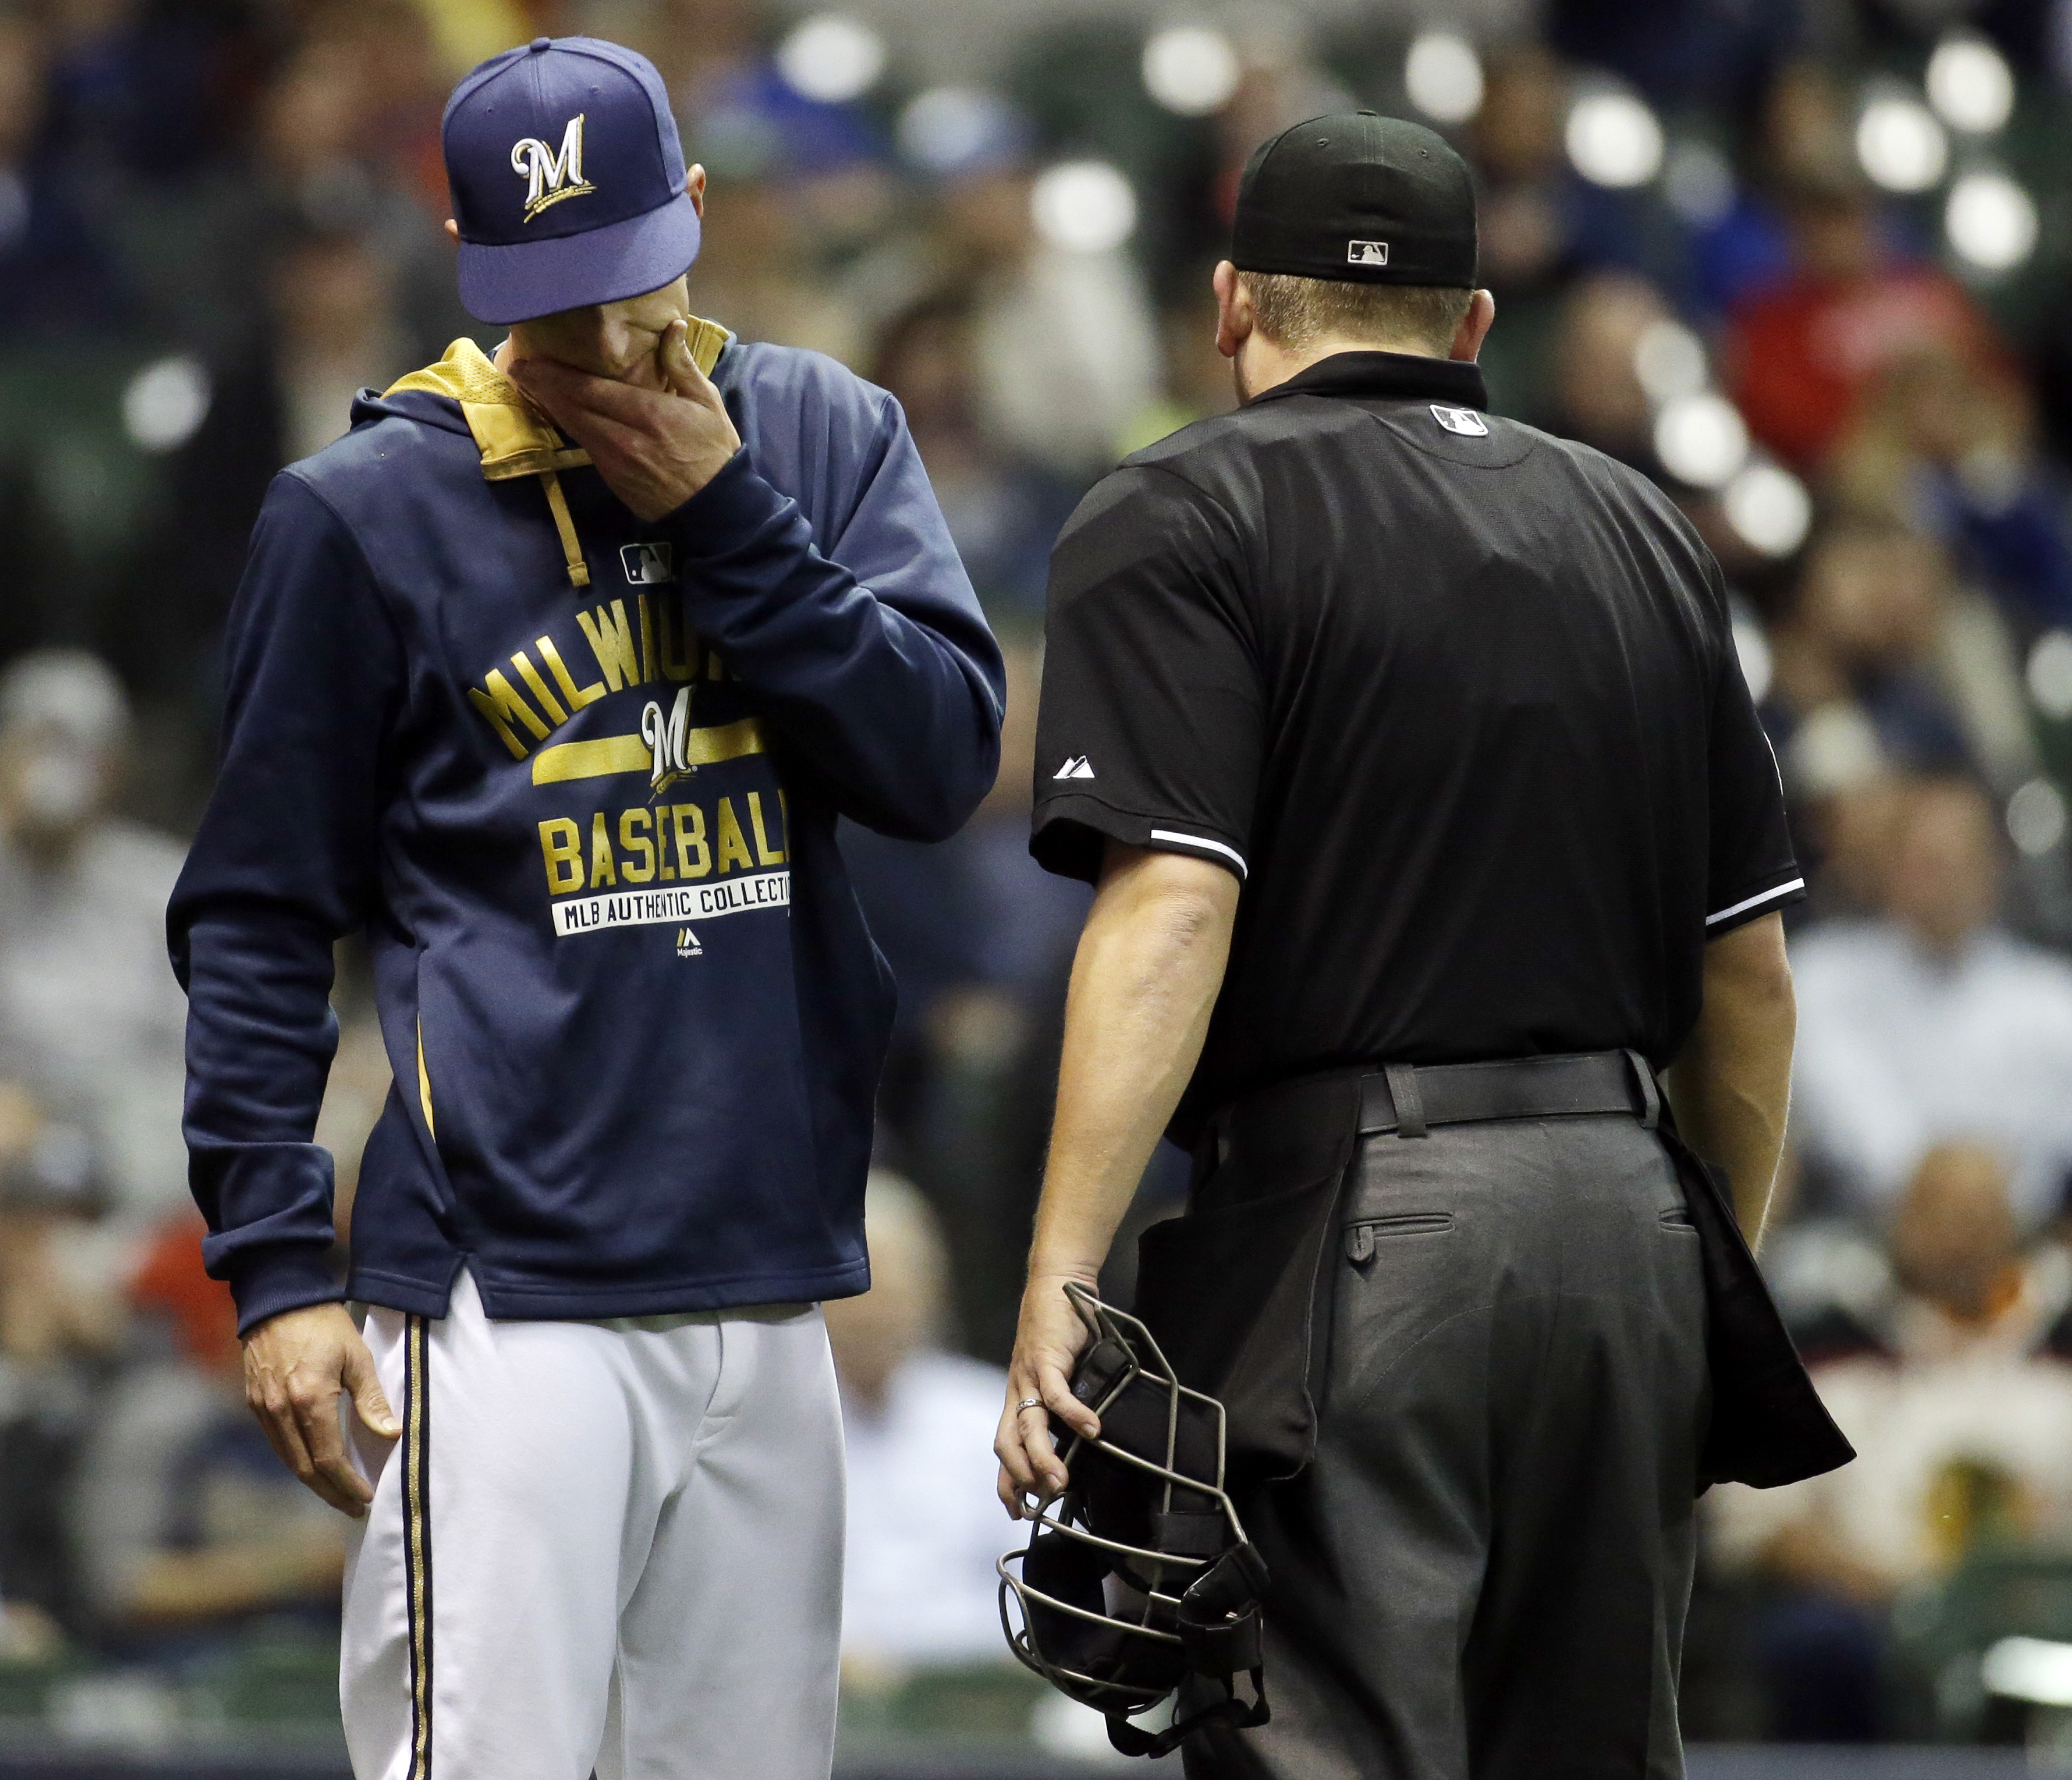 Milwaukee Brewers manager Craig Counsell reacts after arguing a catchers interference call with home plate umpire Clint Fagan during the ninth inning of a baseball game against the Chicago White Sox Tuesday, May 12, 2015, in Milwaukee. (AP Photo/Morry Gas